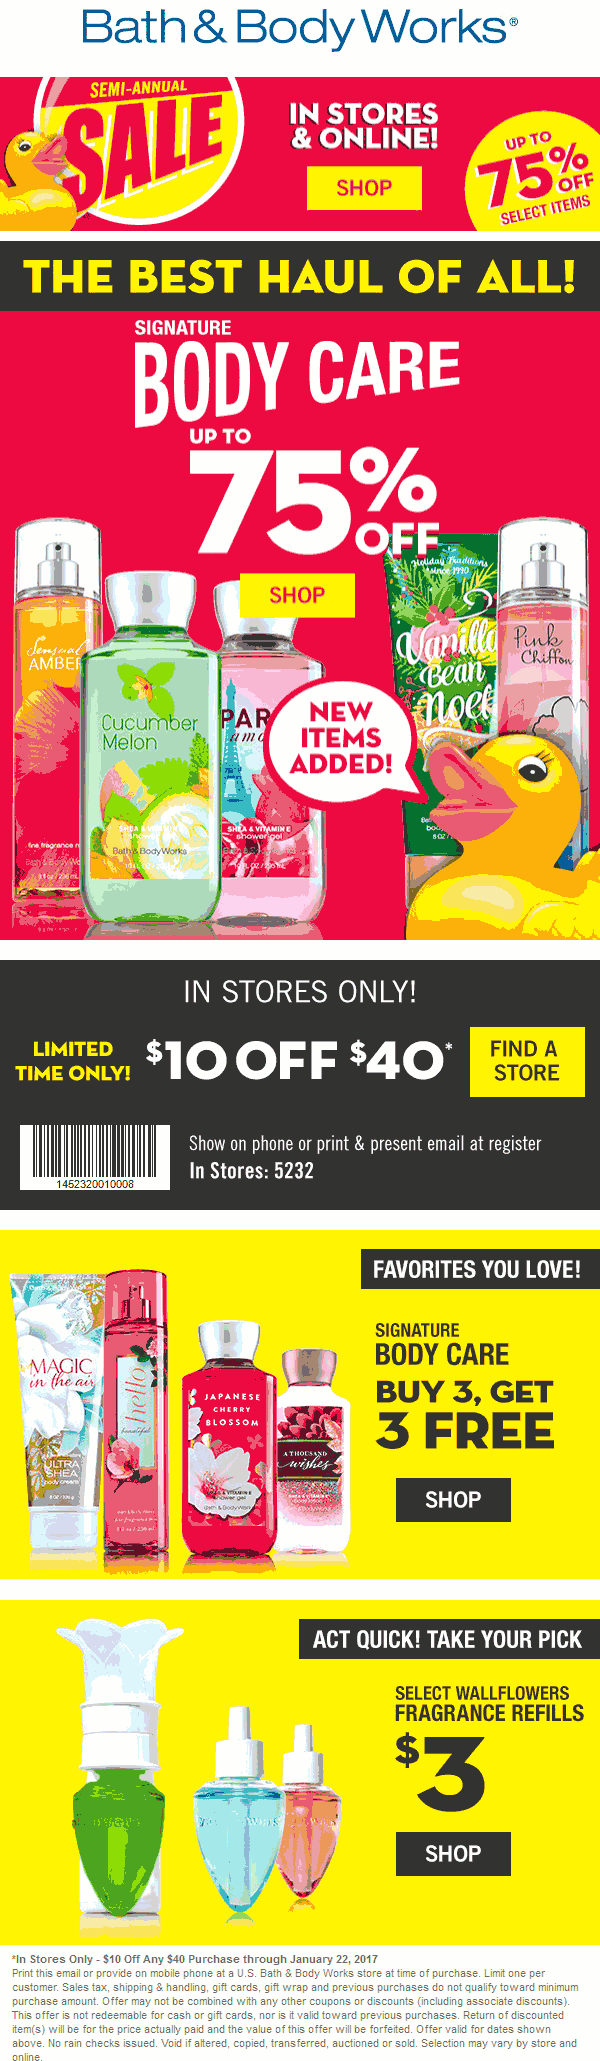 Bath&BodyWorks.com Promo Coupon $10 off $40 at Bath & Body Works